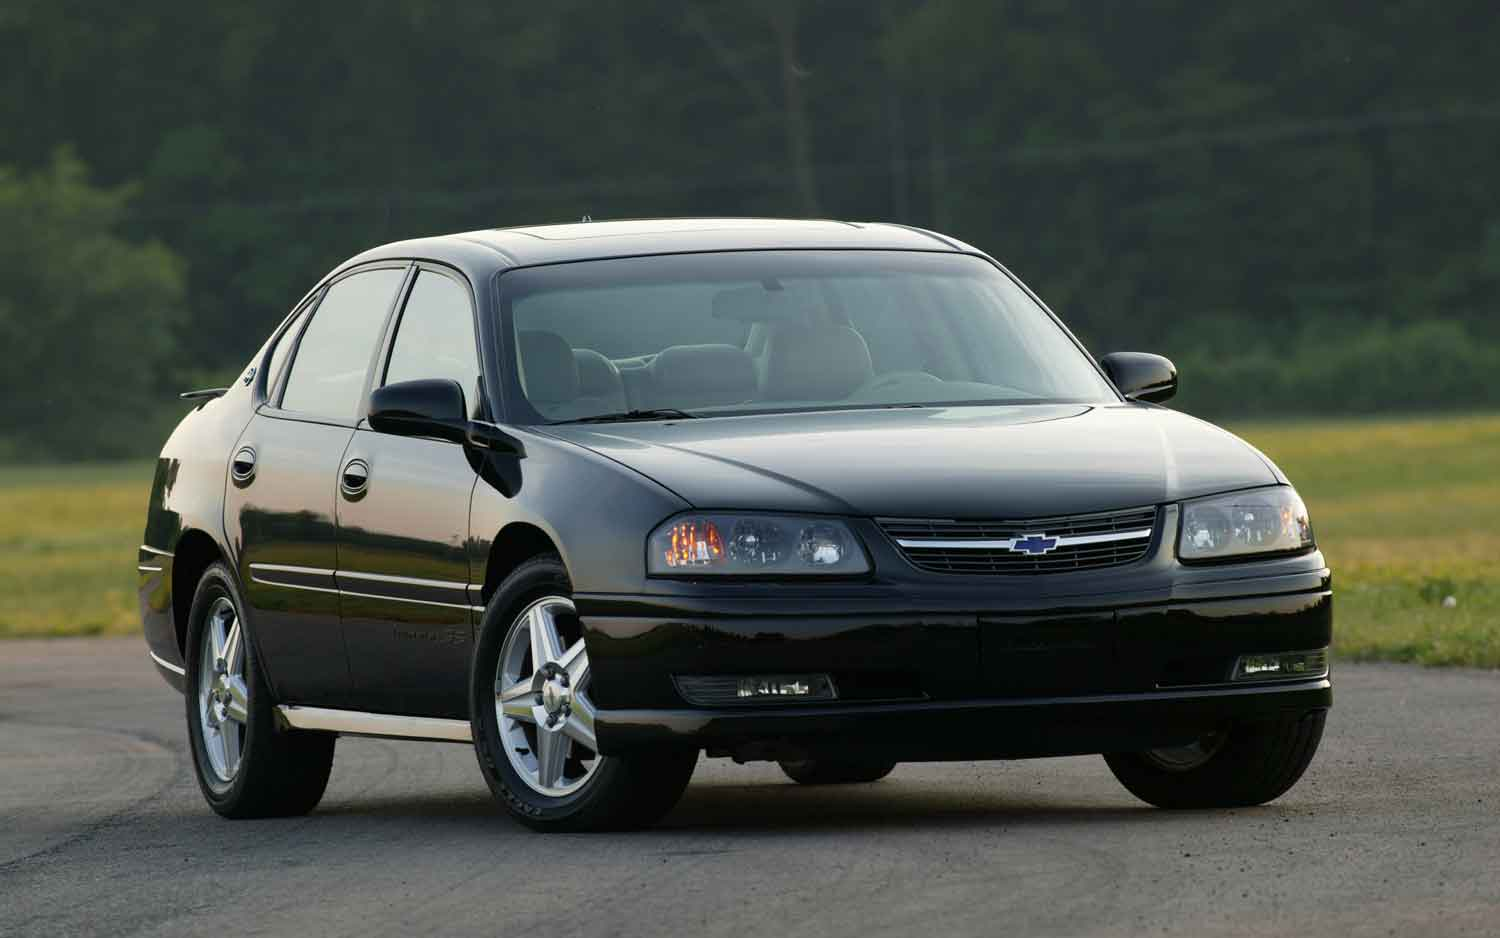 Impala 2004 chevrolet impala : 2004 Chevrolet Impala (w) – pictures, information and specs - Auto ...